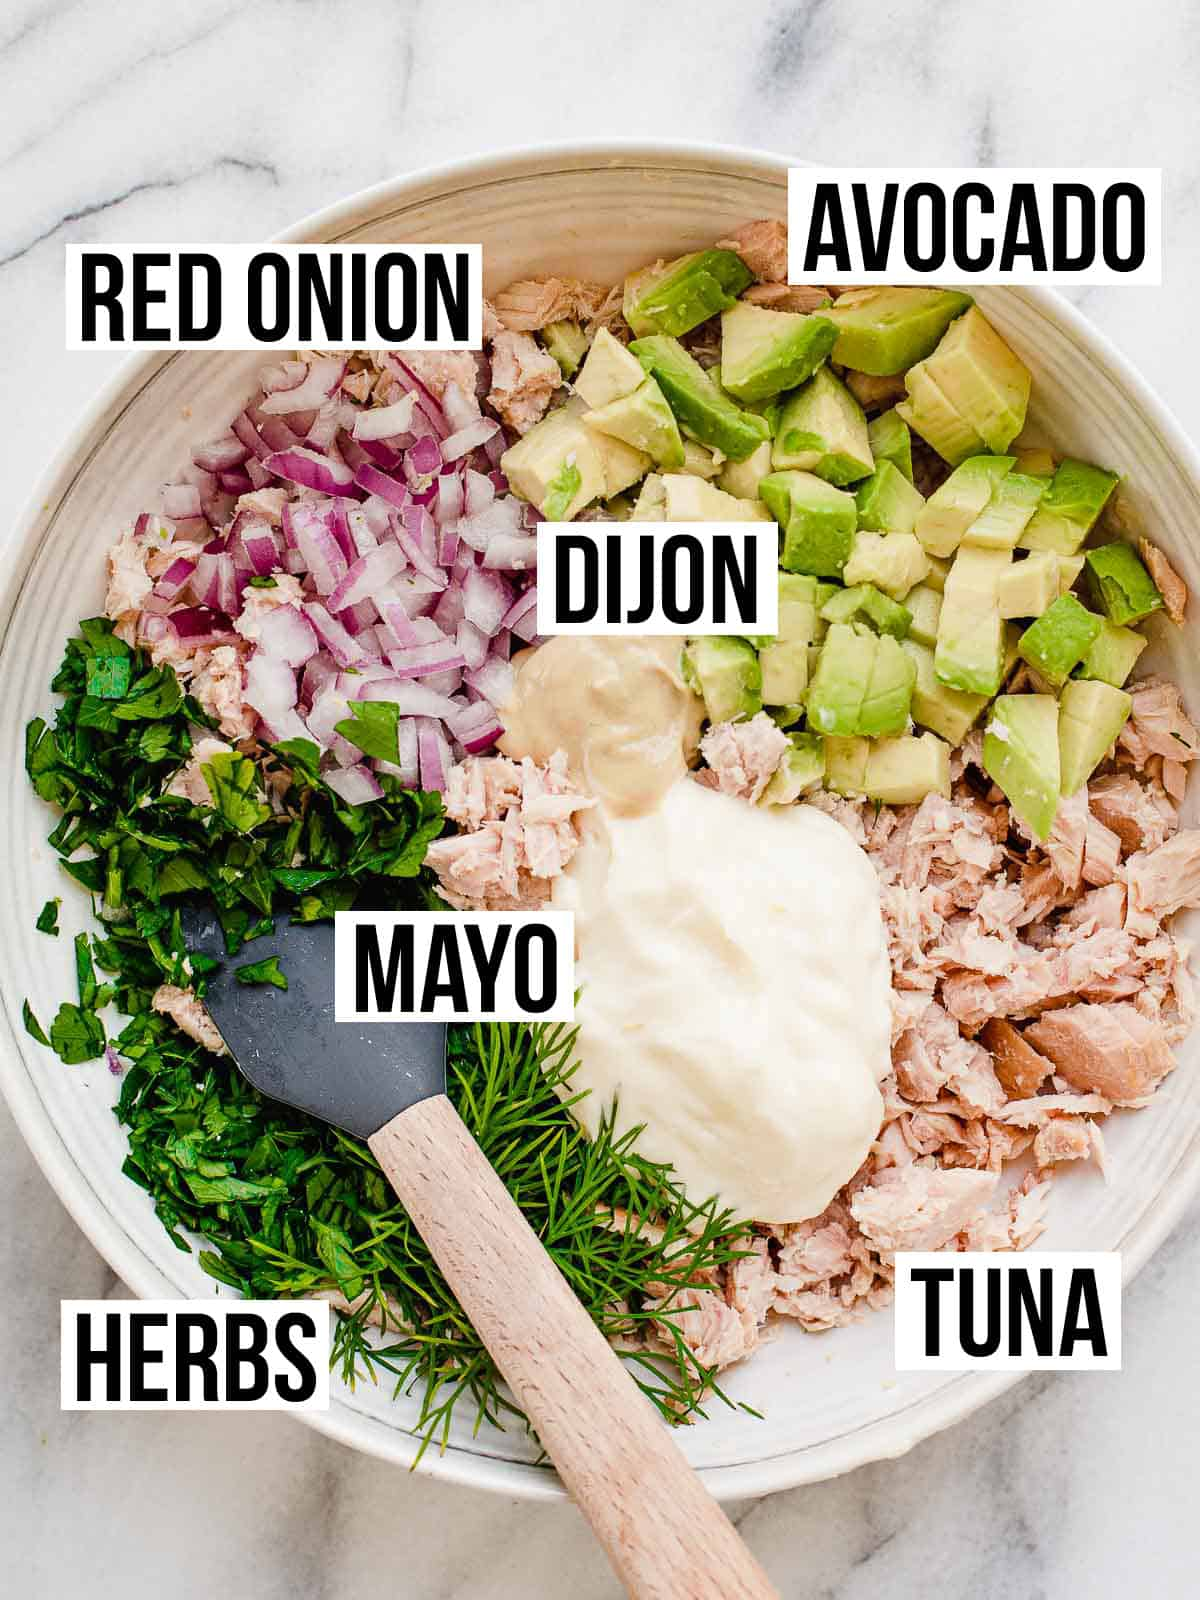 Tuna salad ingredients in a bowl with a spatula.